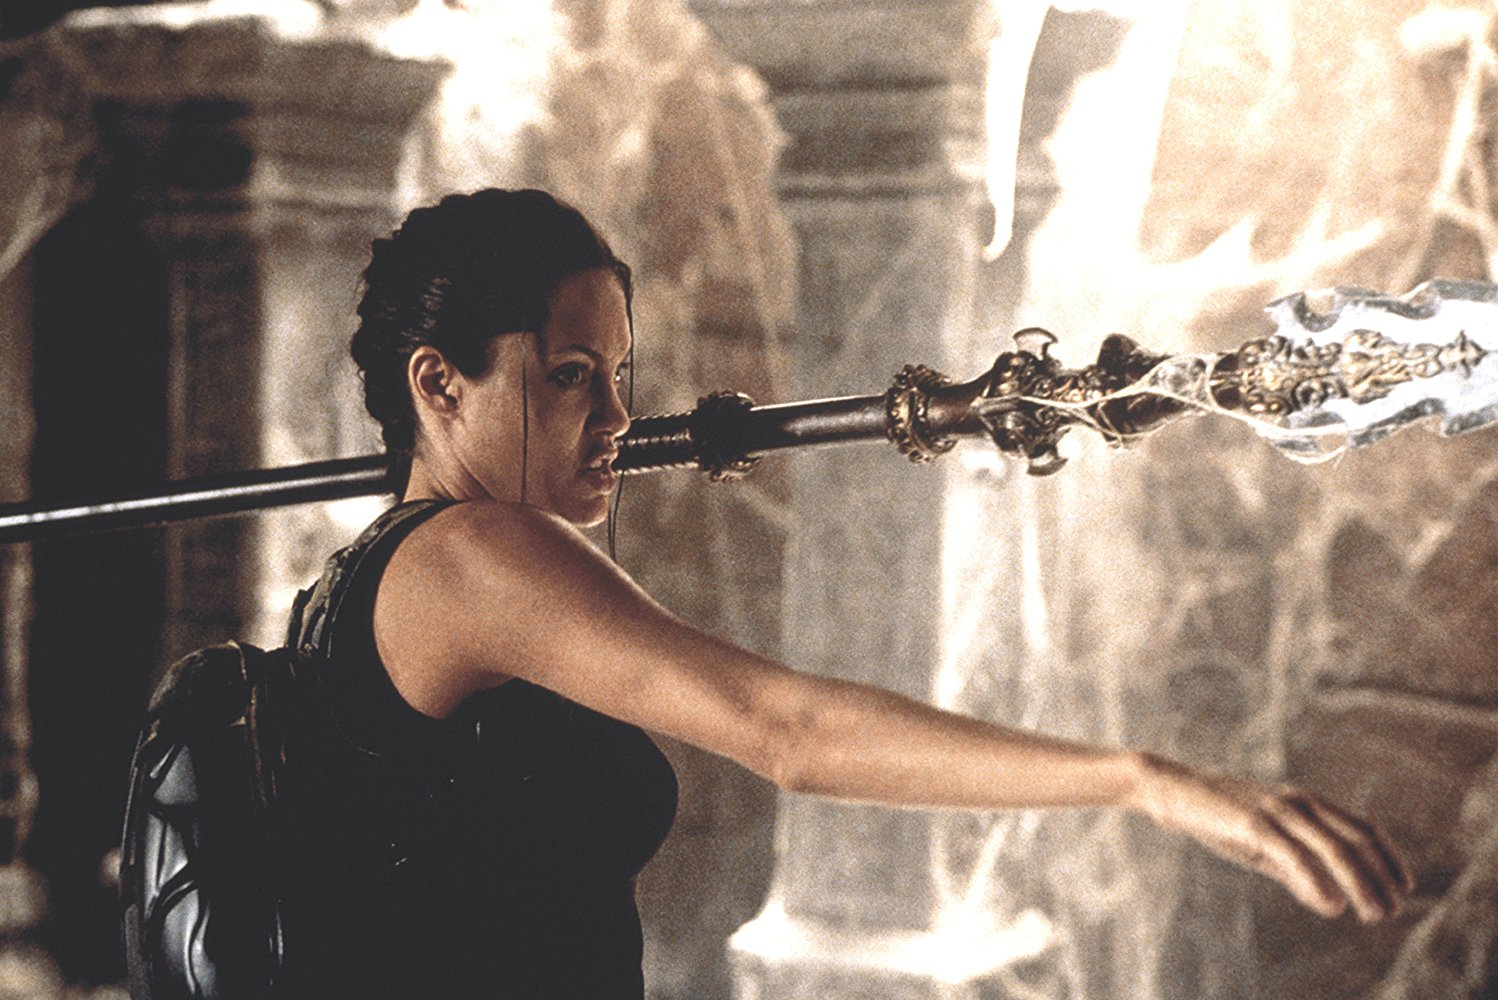 Angelina Jolie in Lara Croft, Tomb Raider (2001)